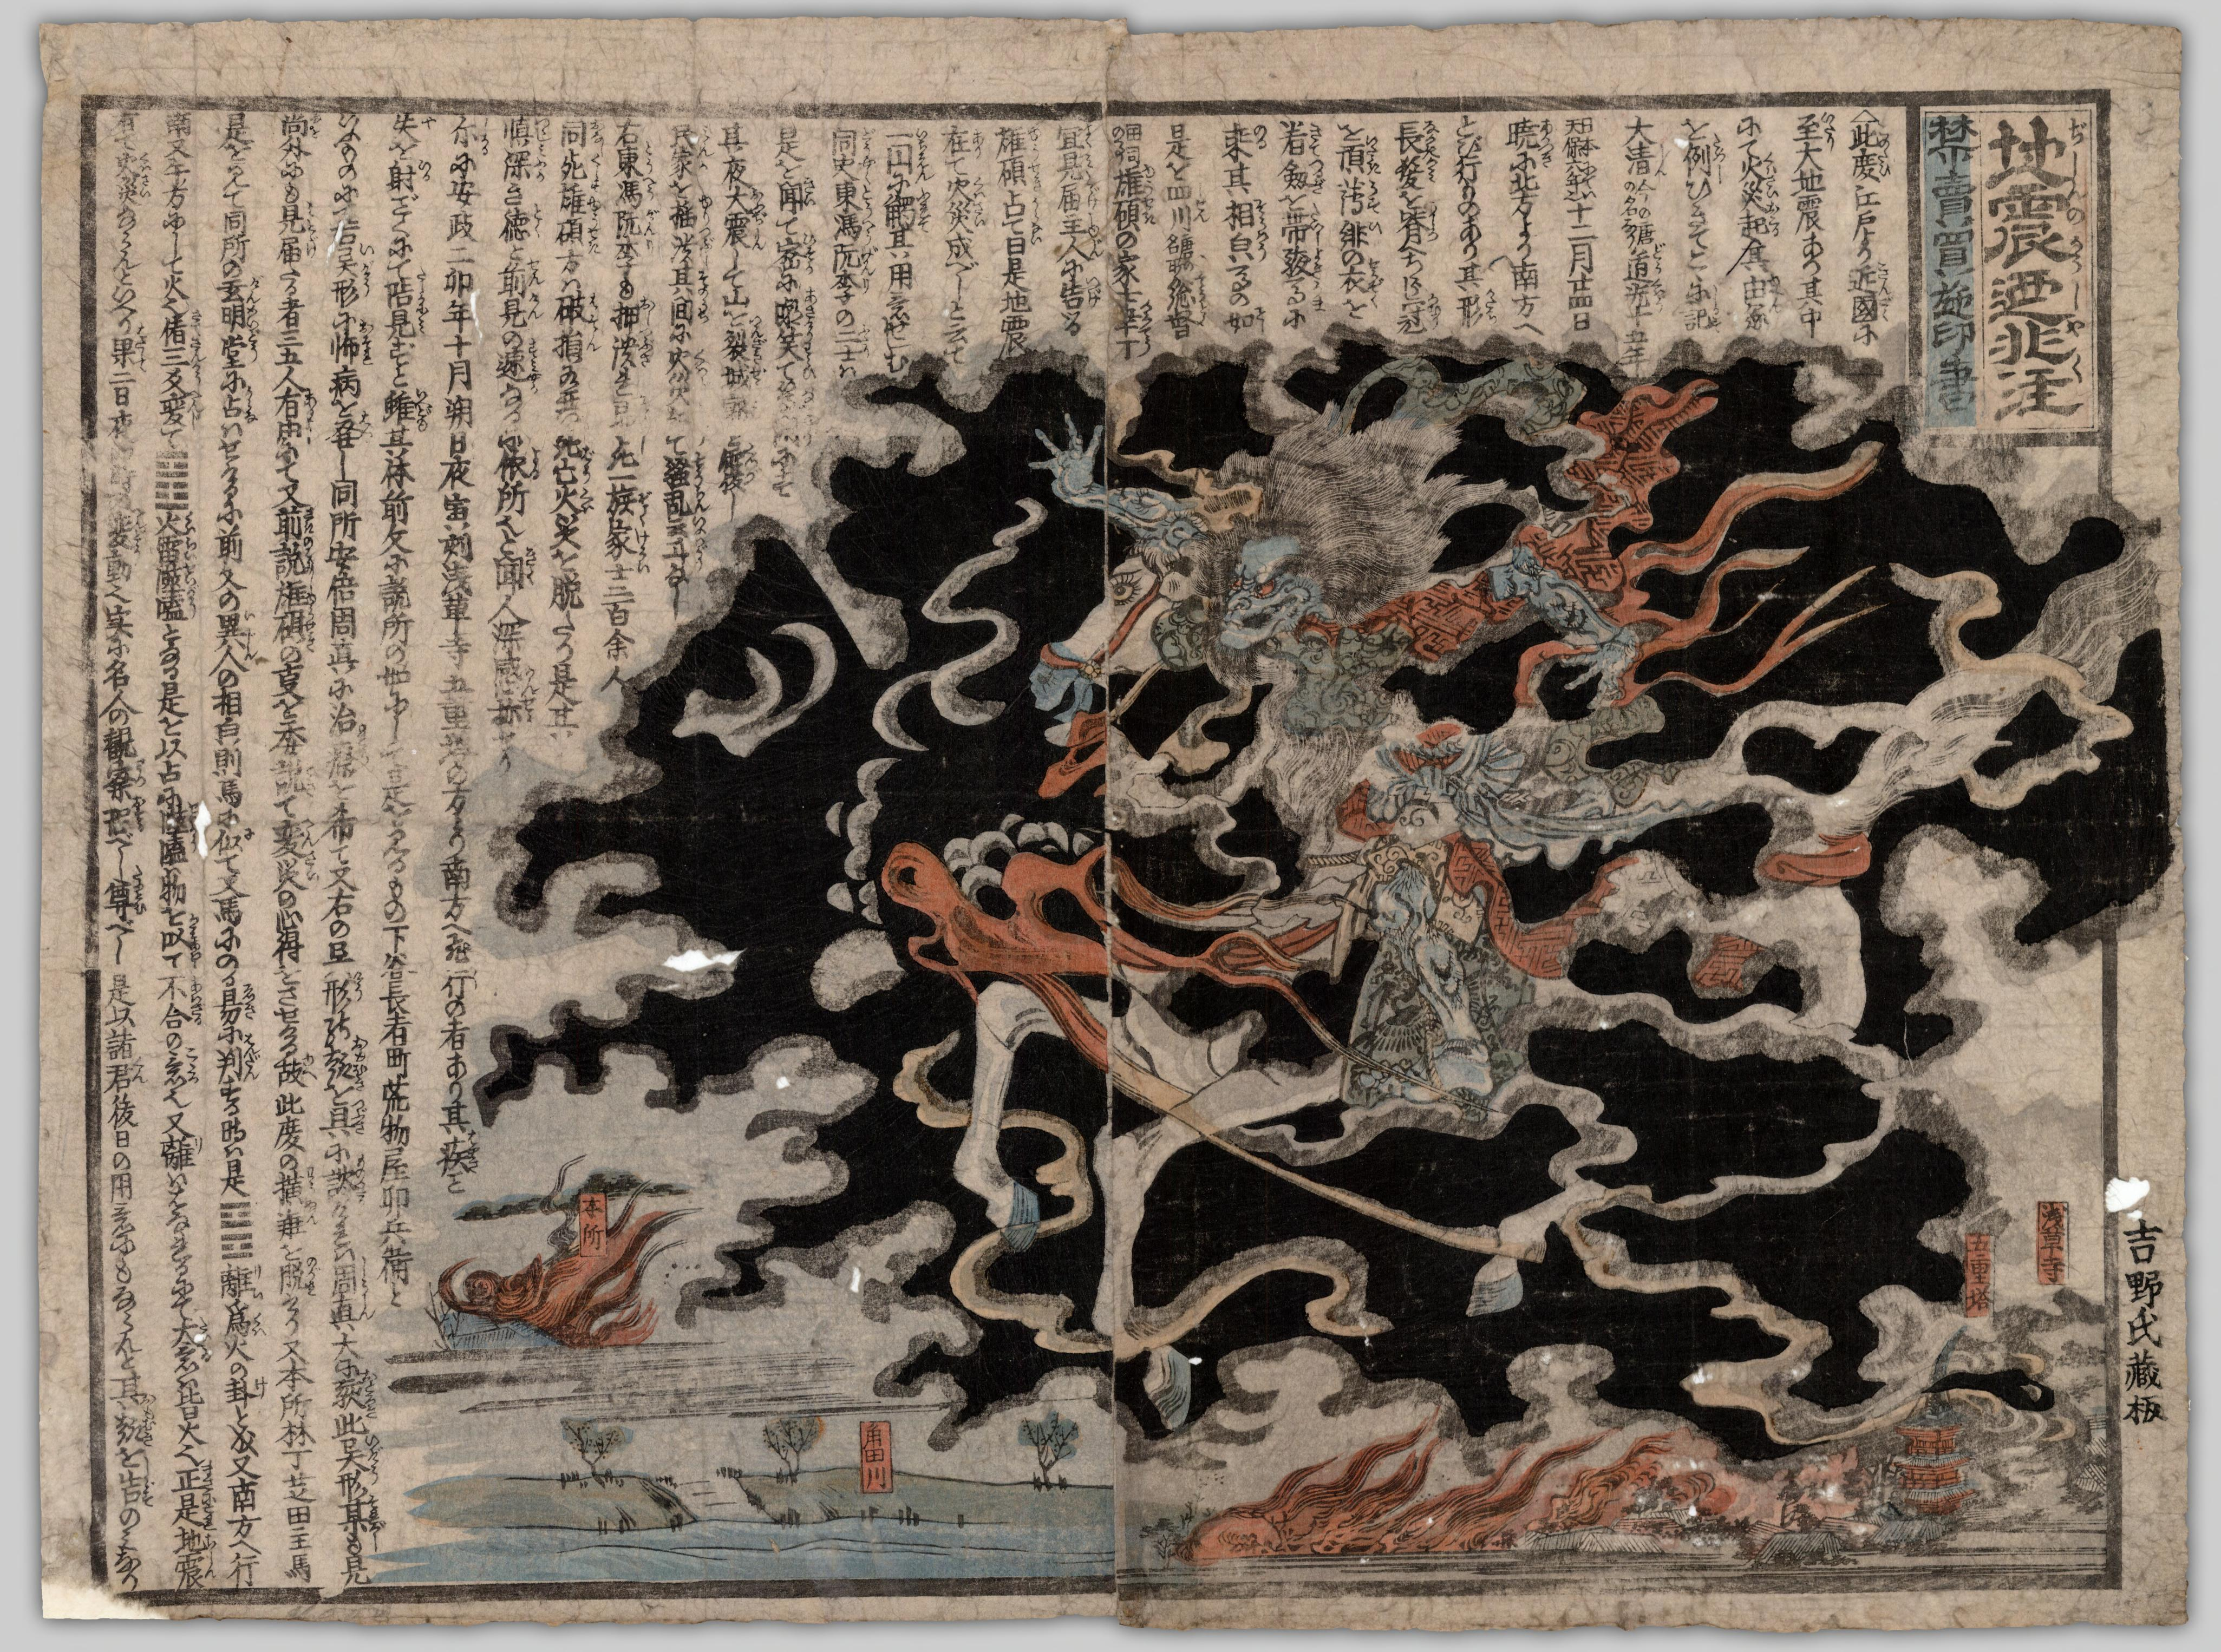 A Meiji Sanriku Tsunami Print depicting the story of a mega earthquake that destroyed temples and pagodas.